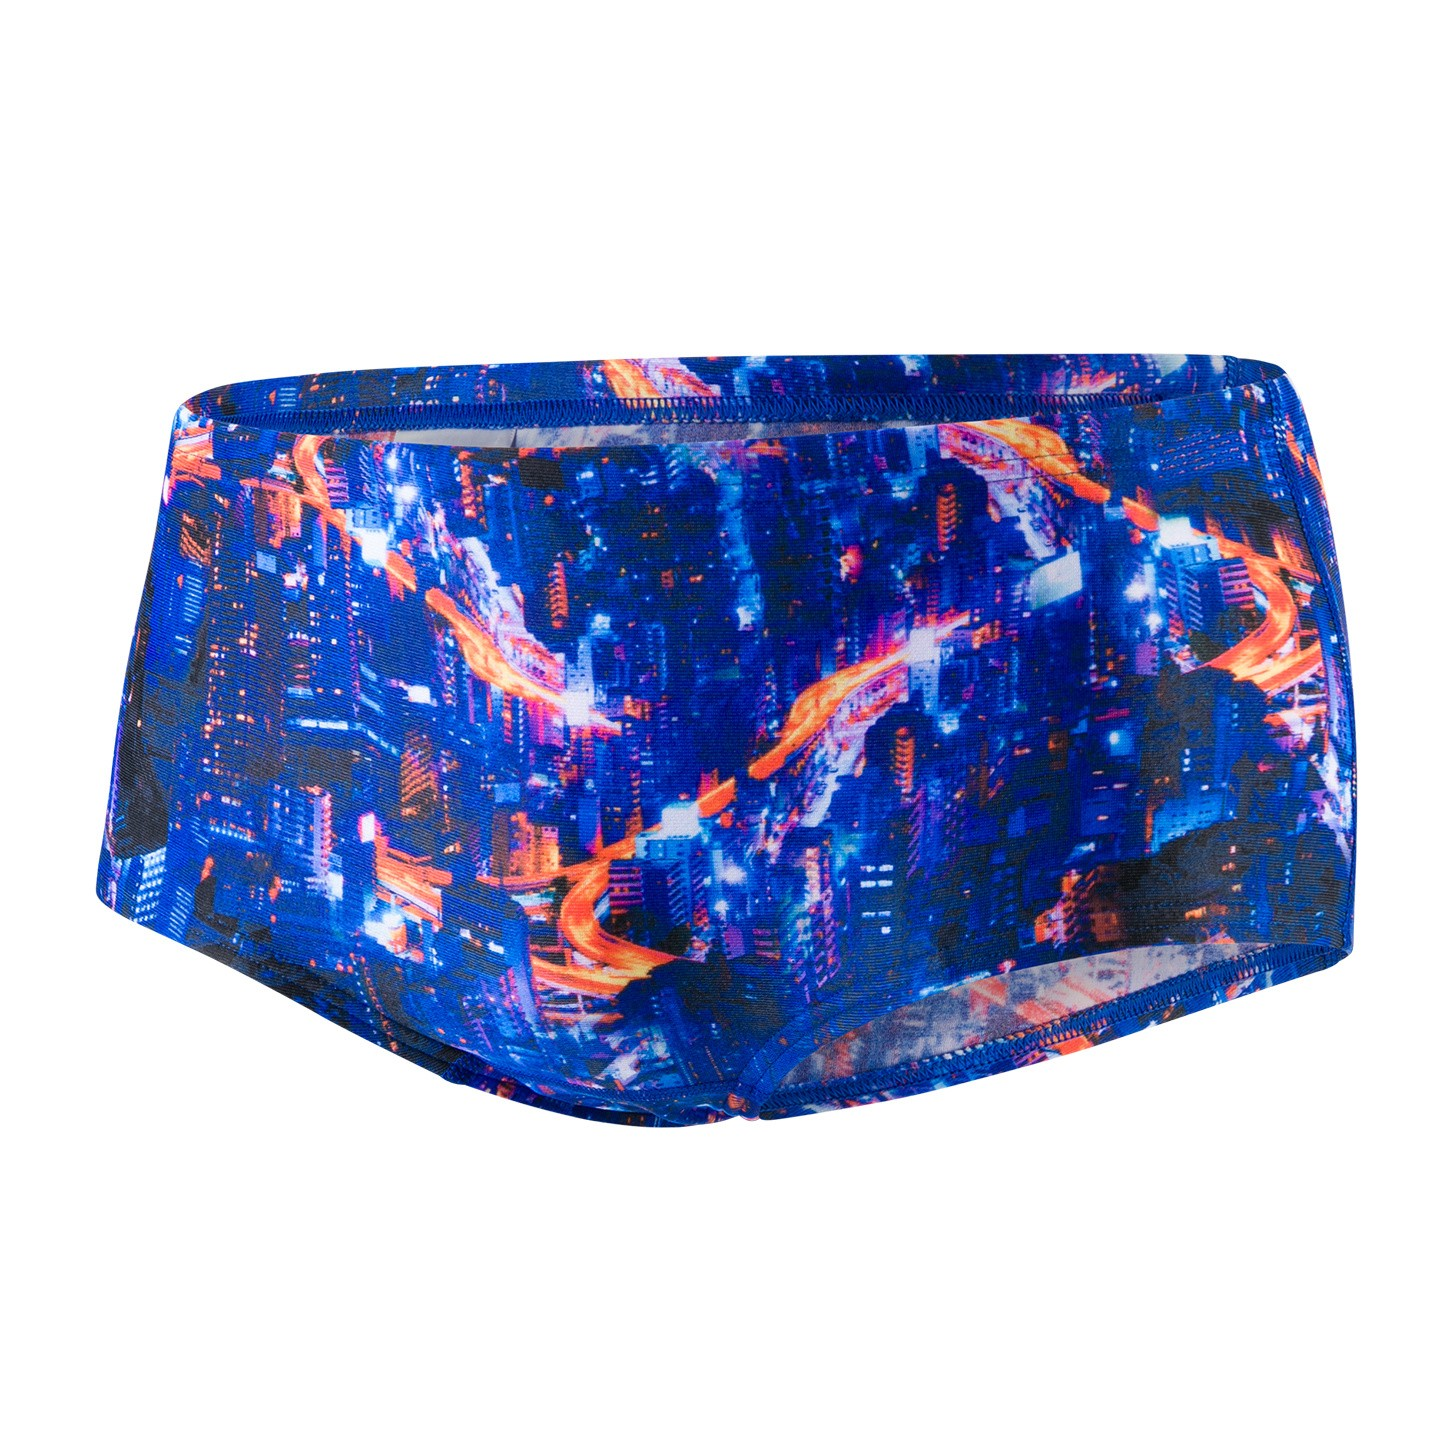 Speedo brief Allover 14cm blue/multi